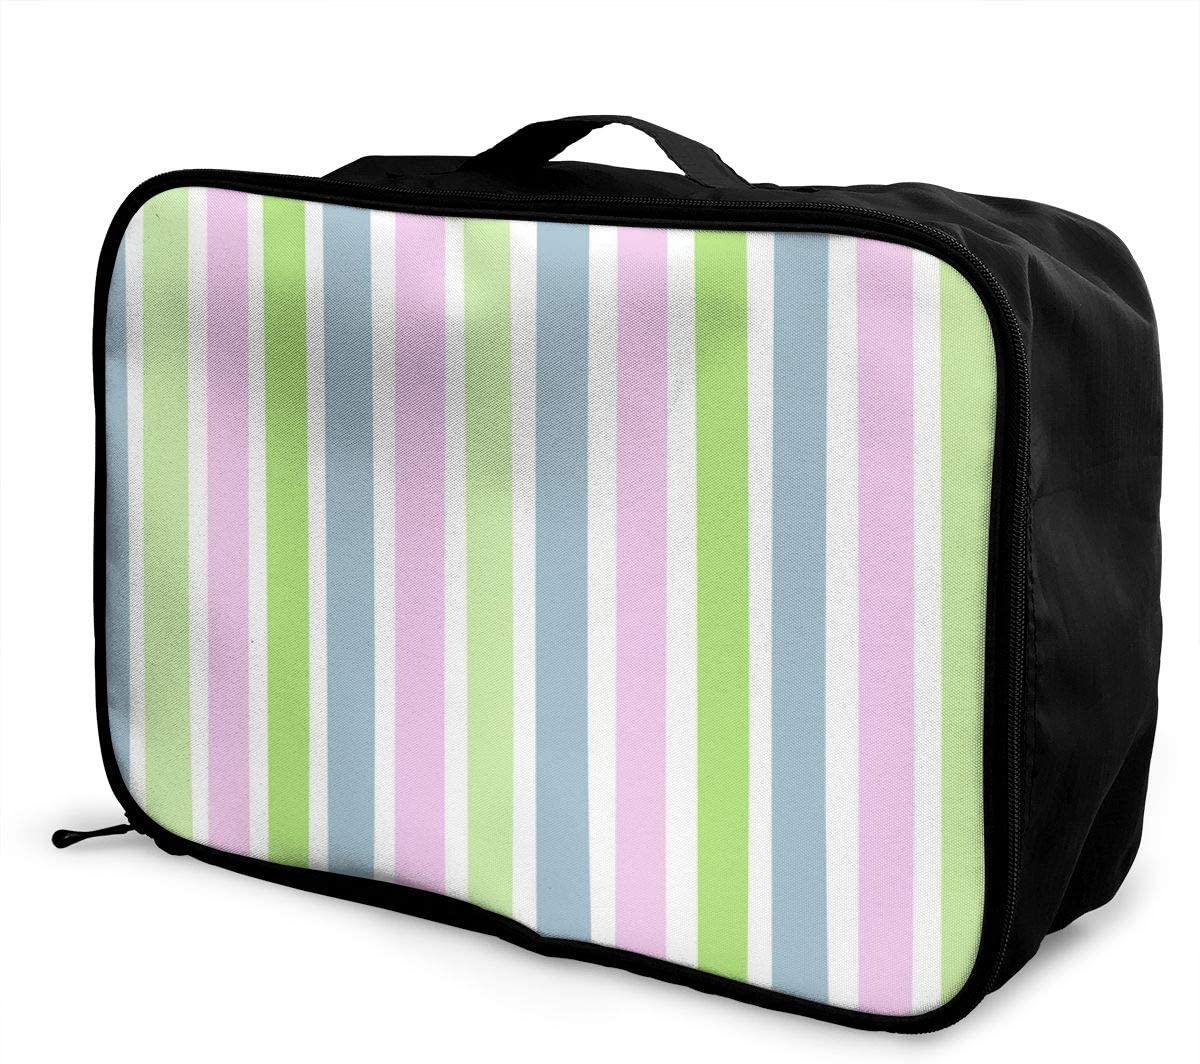 Yunshm Vertical Stripes Green Blue Pink Personalized Trolley Handbag Waterproof Unisex Large Capacity For Business Travel Storage